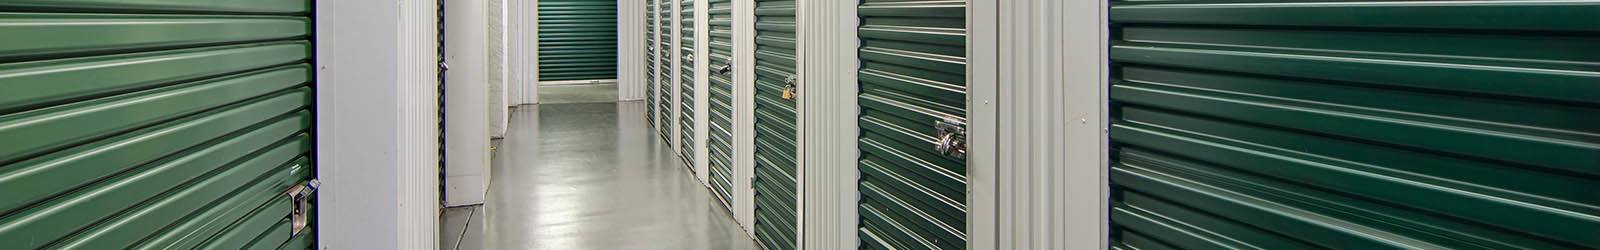 Reviews of self storage in Houston, TX